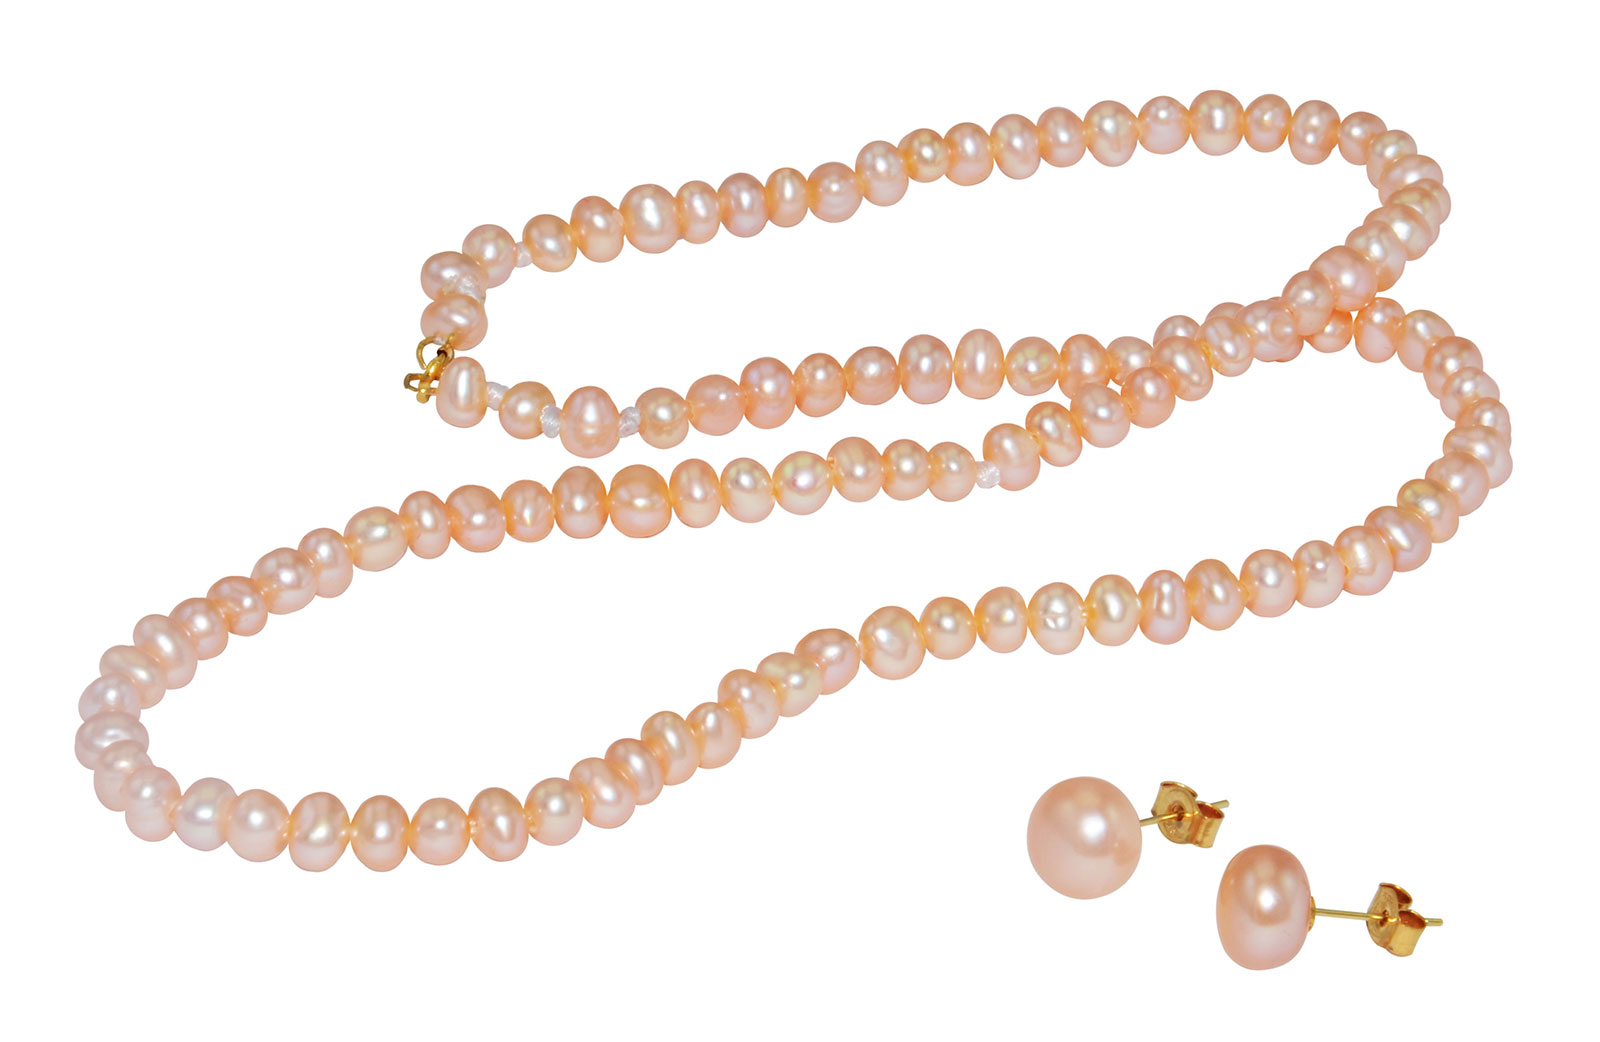 Vera Perla 18K Gold  3mm Pink Pearl Strand Necklace & 7mm Earrings